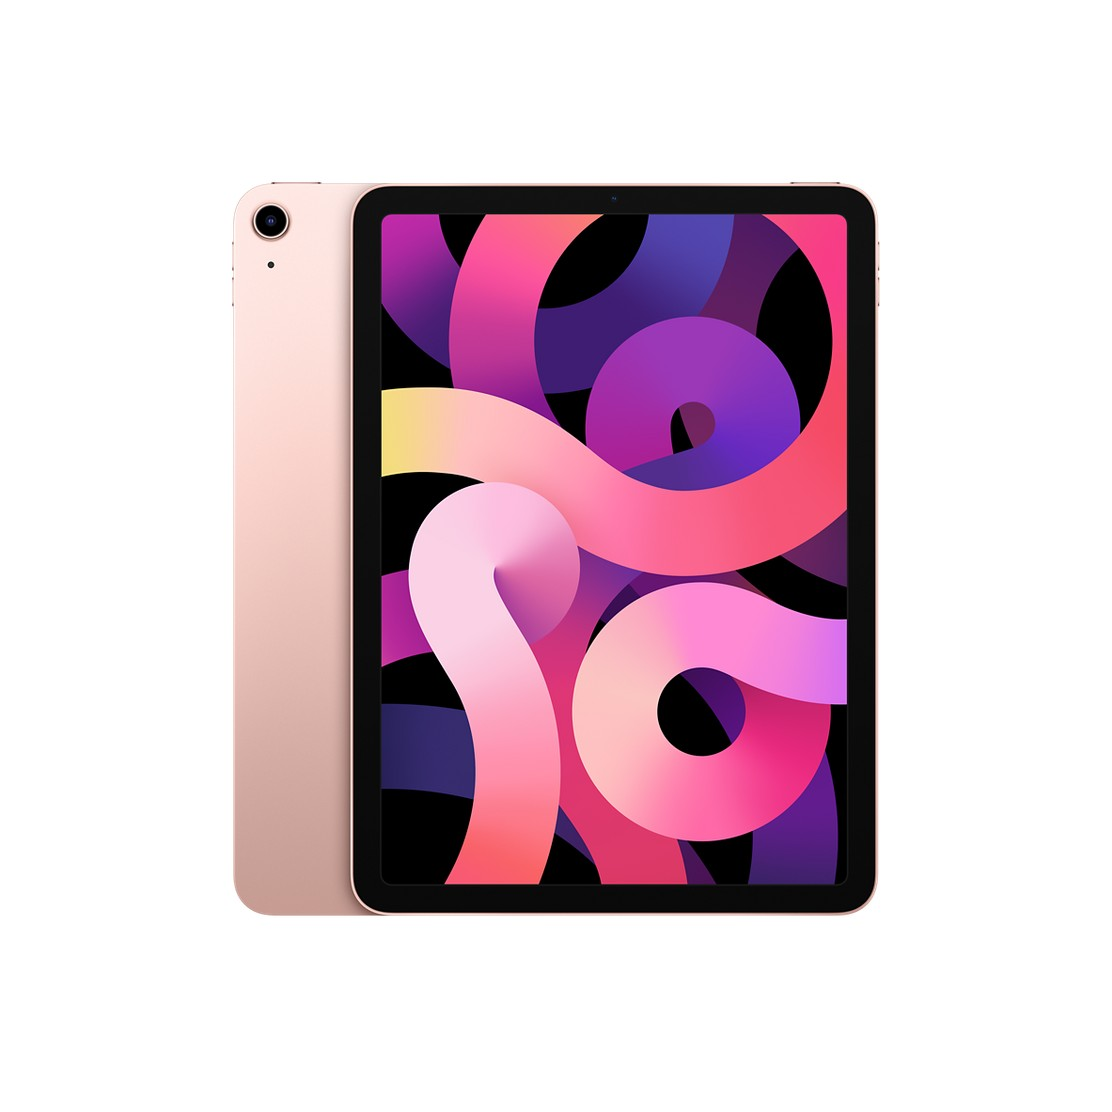 Image of Apple iPad Air 2020 4th generation A14 256GB Wi-Fi - Rose Gold